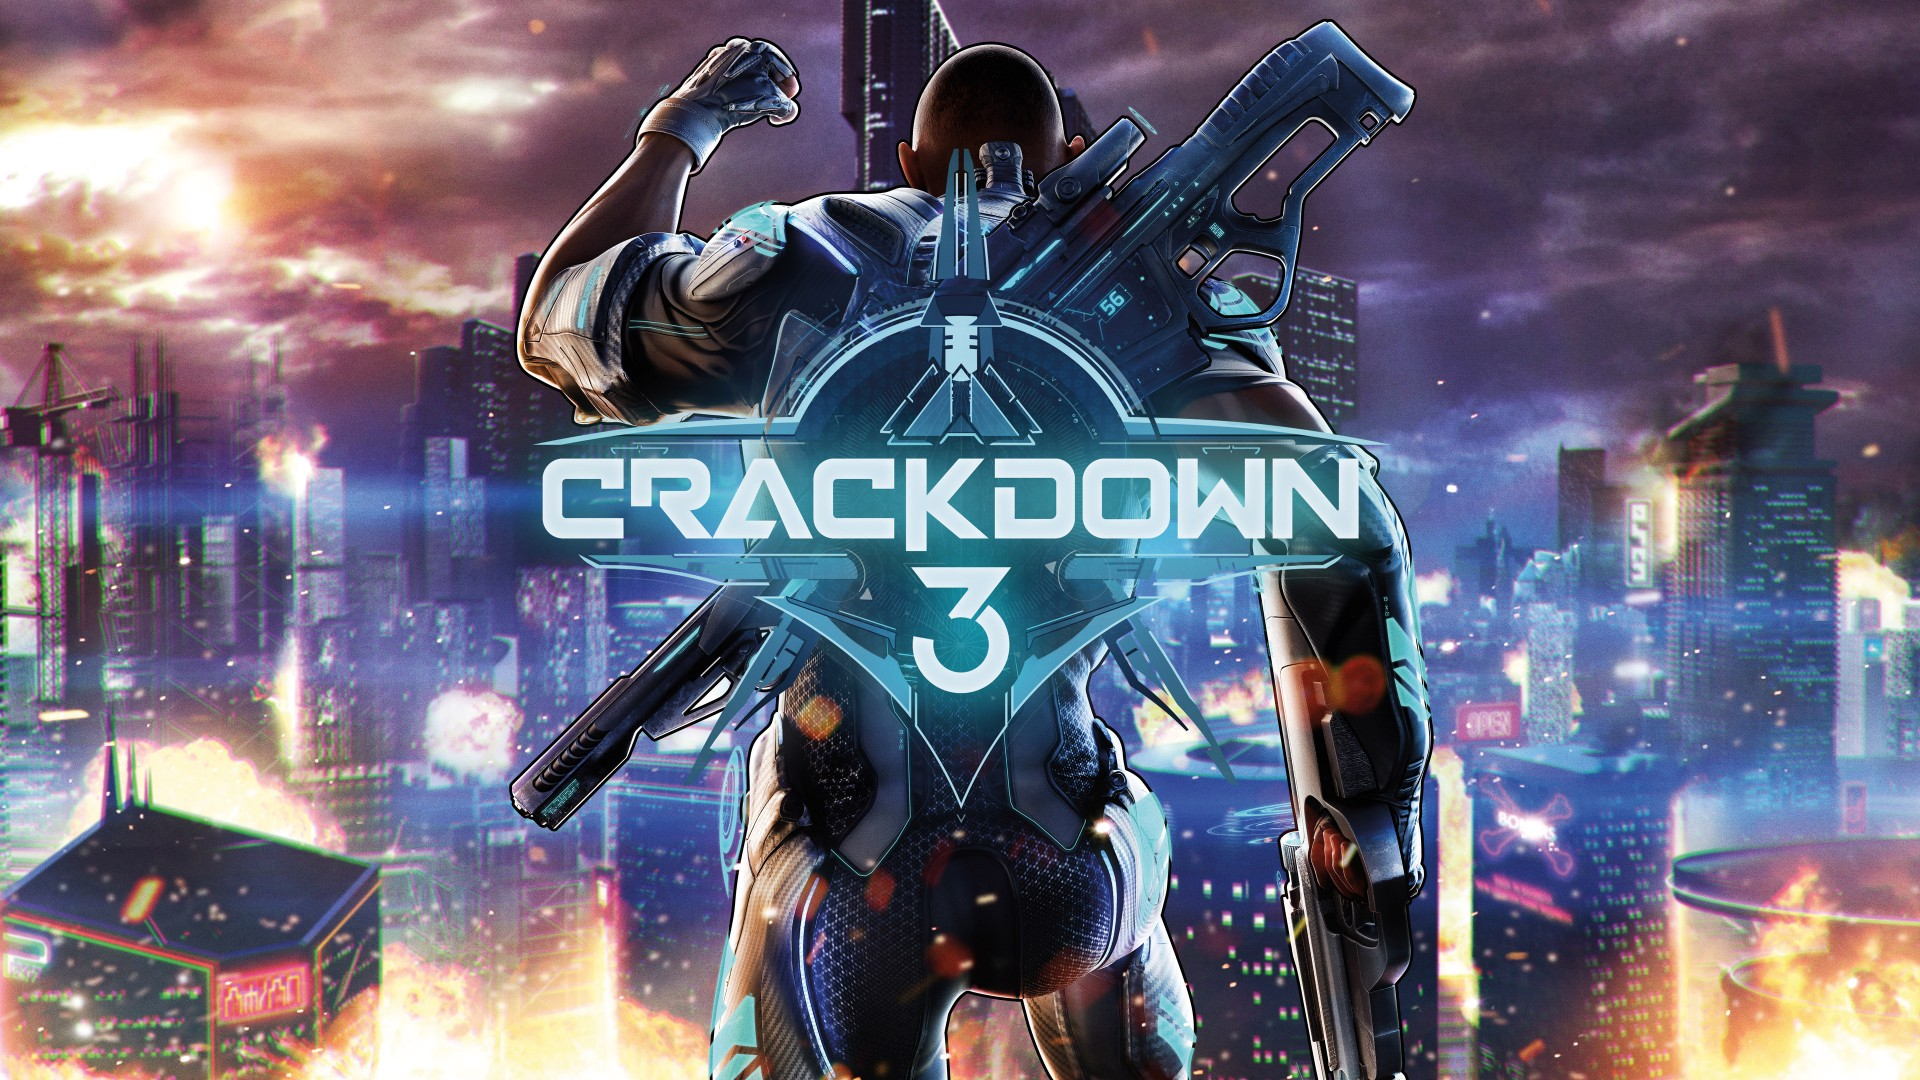 Crackdown 3 Xbox One 4k Wallpapers